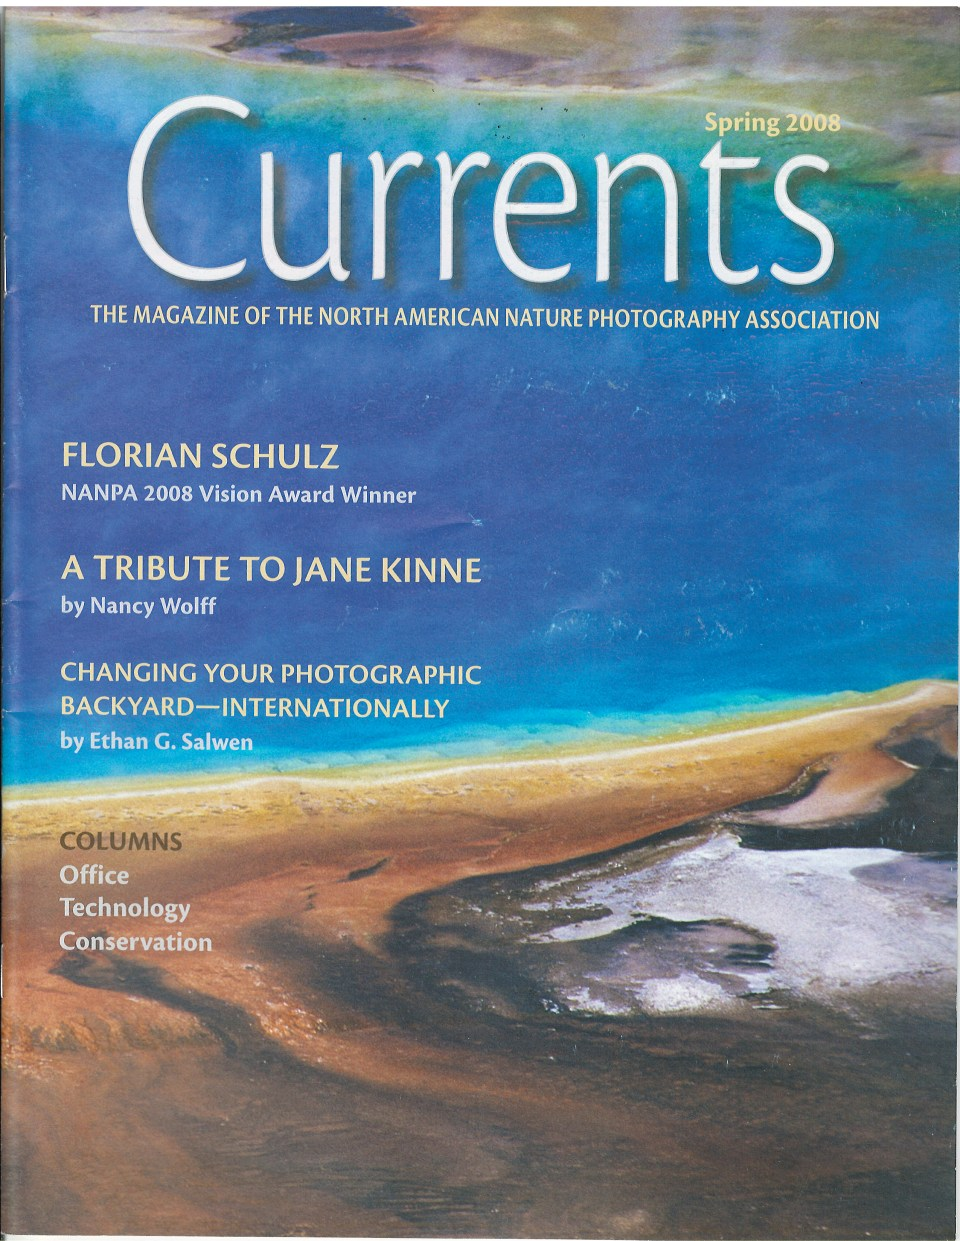 2008 Currents Spring Cover